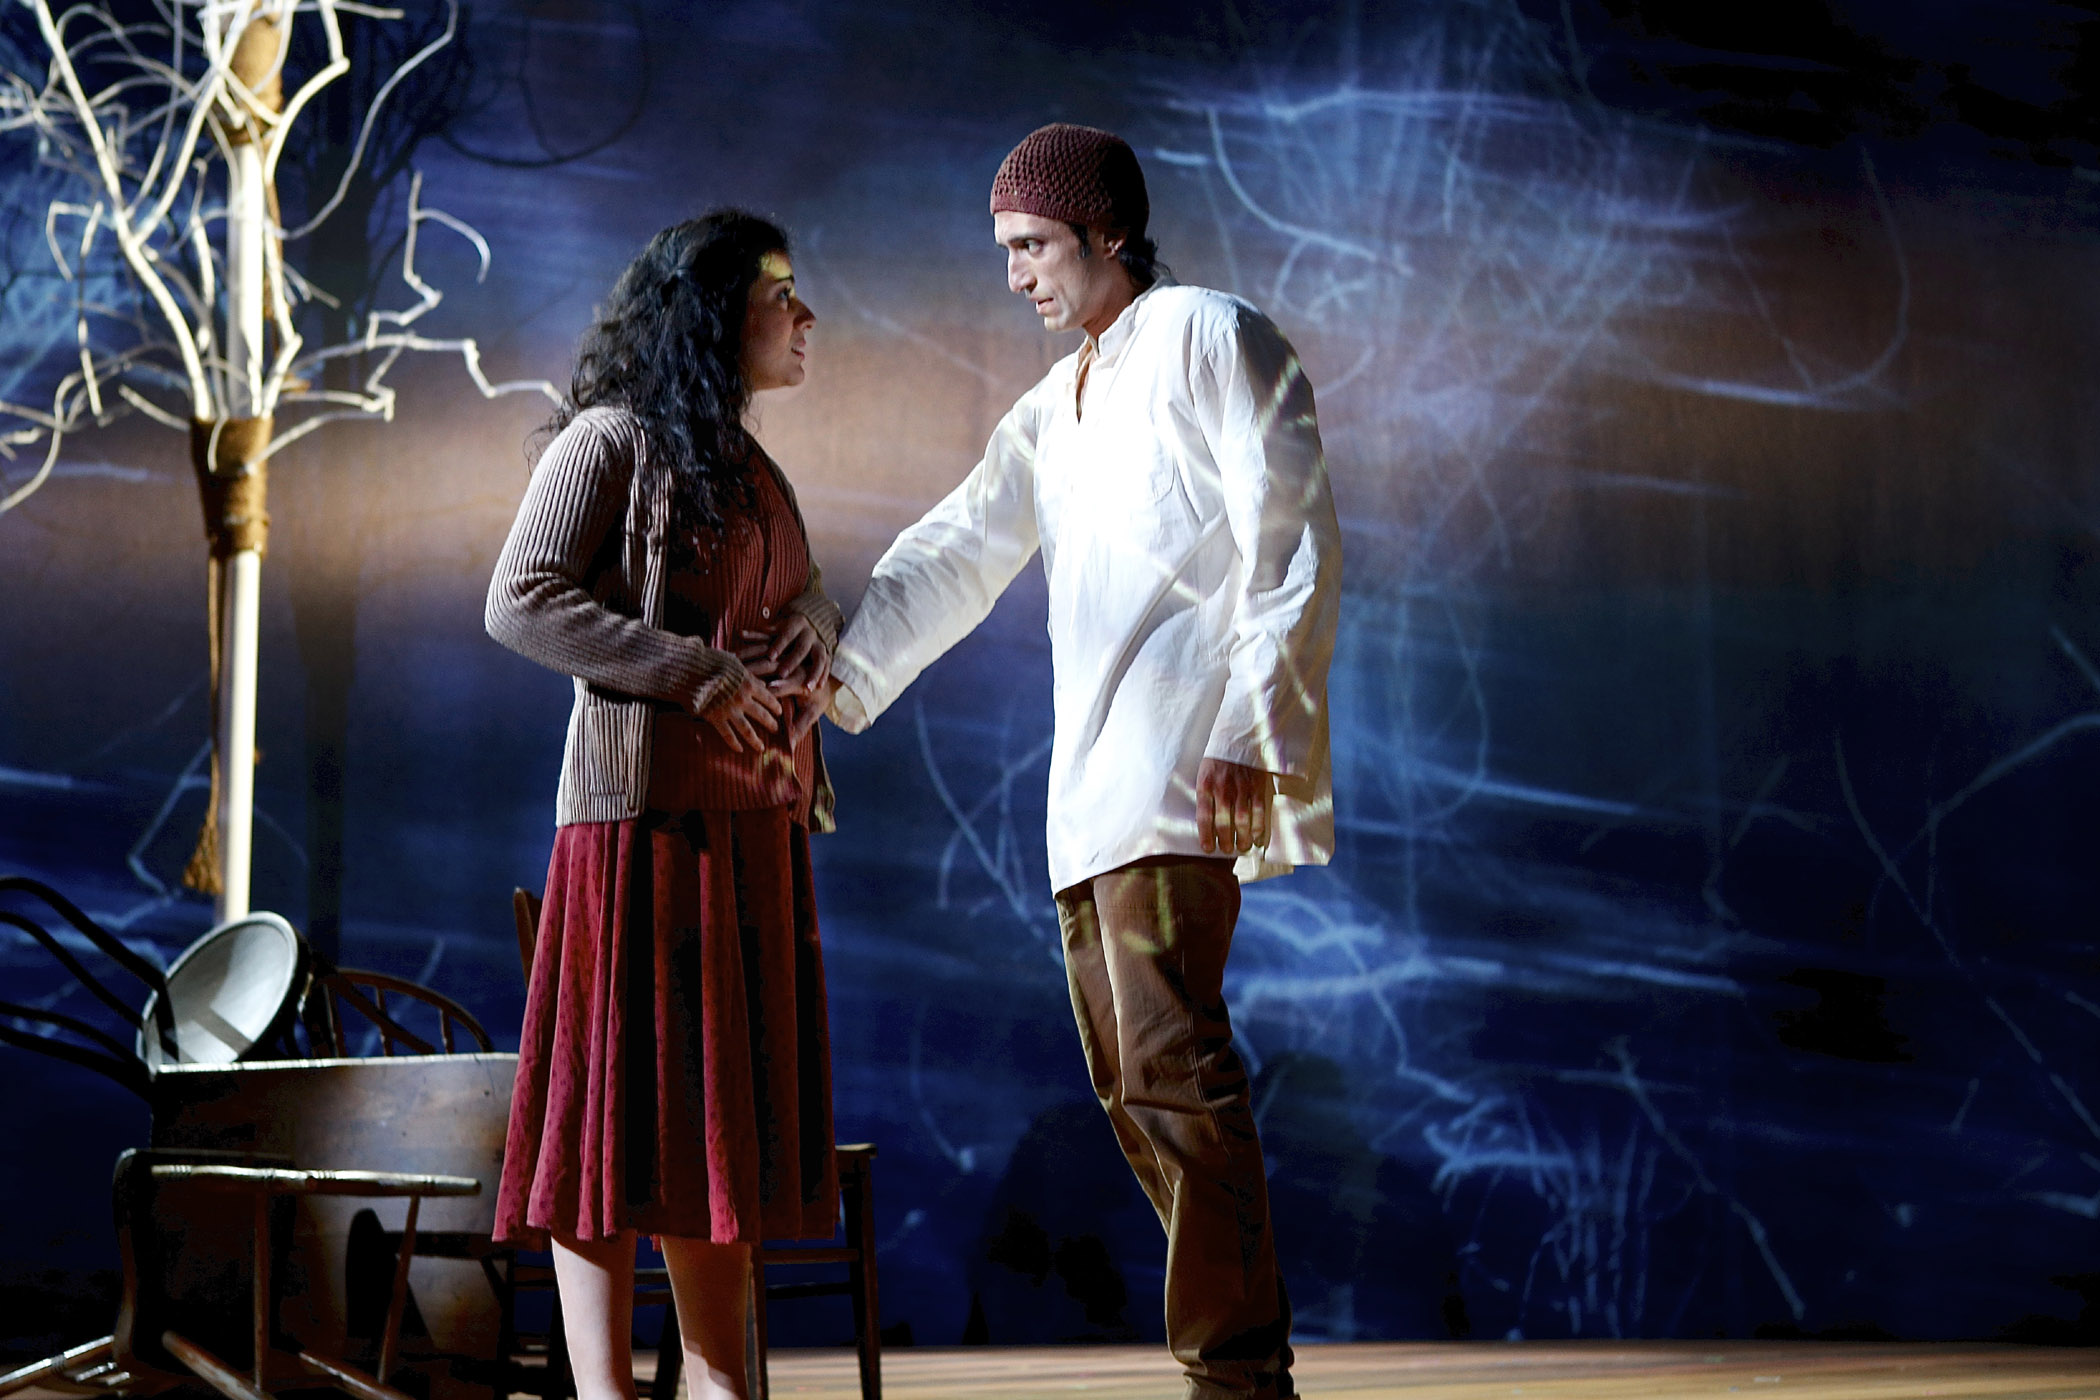 Nadine Malouf (Nawal) and René Millán (Wahab/Nihad) in the Syracuse Stage production of Scorched. Photo by Michael Davis